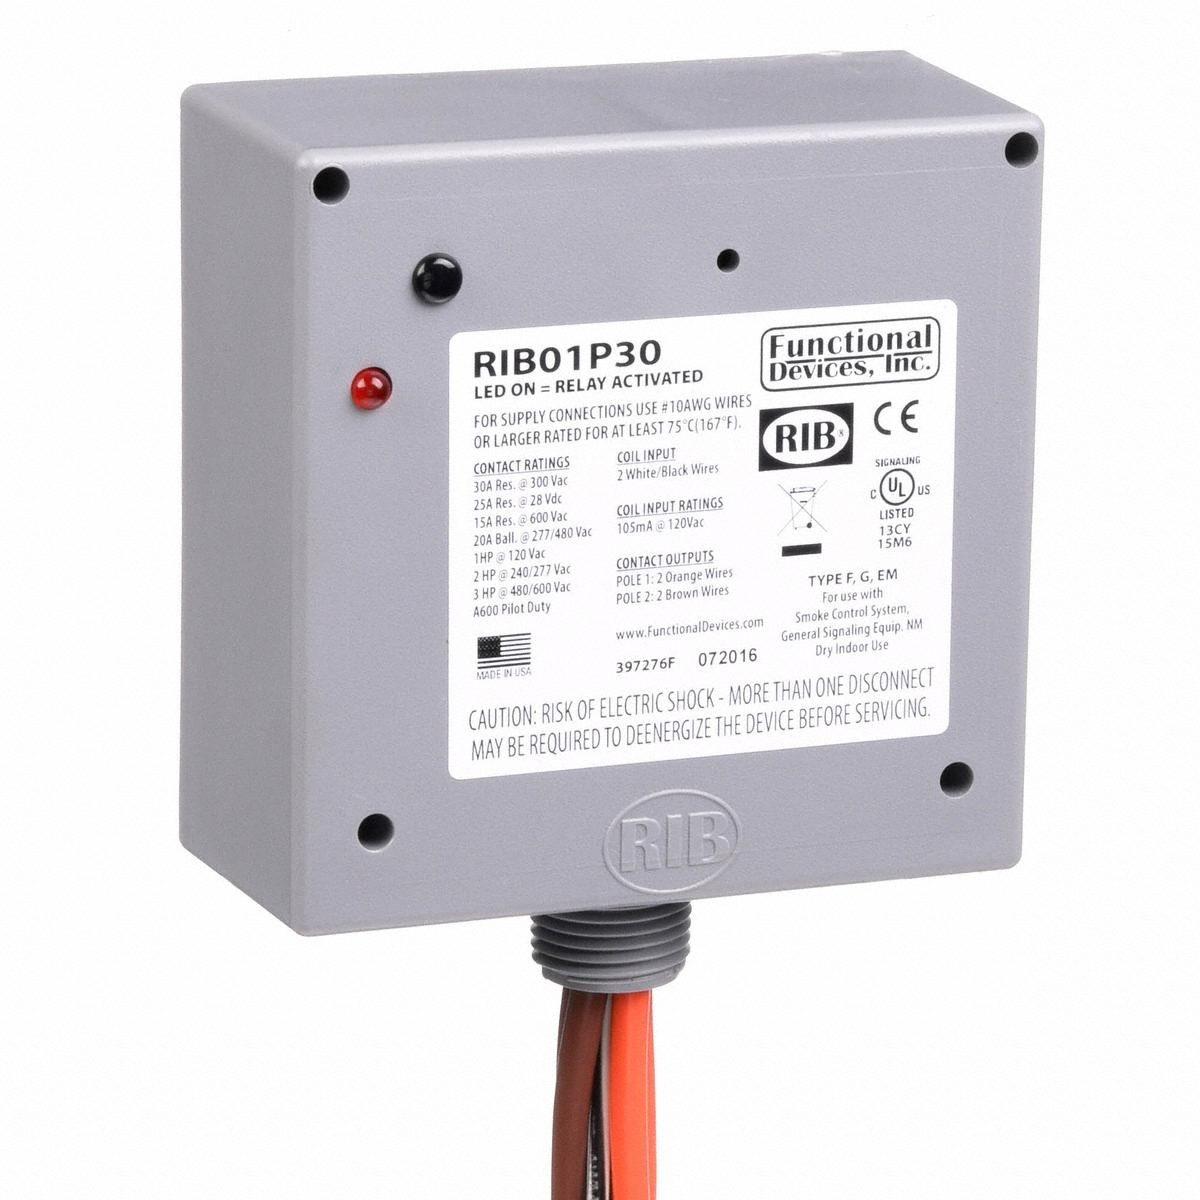 Functional Devices Prewired Enclosed Relay Dpst Pole Throw 120vac Disconnect Wiring Configuration 120v Ac Control Volt 4 In Overall Ht Power Gamut